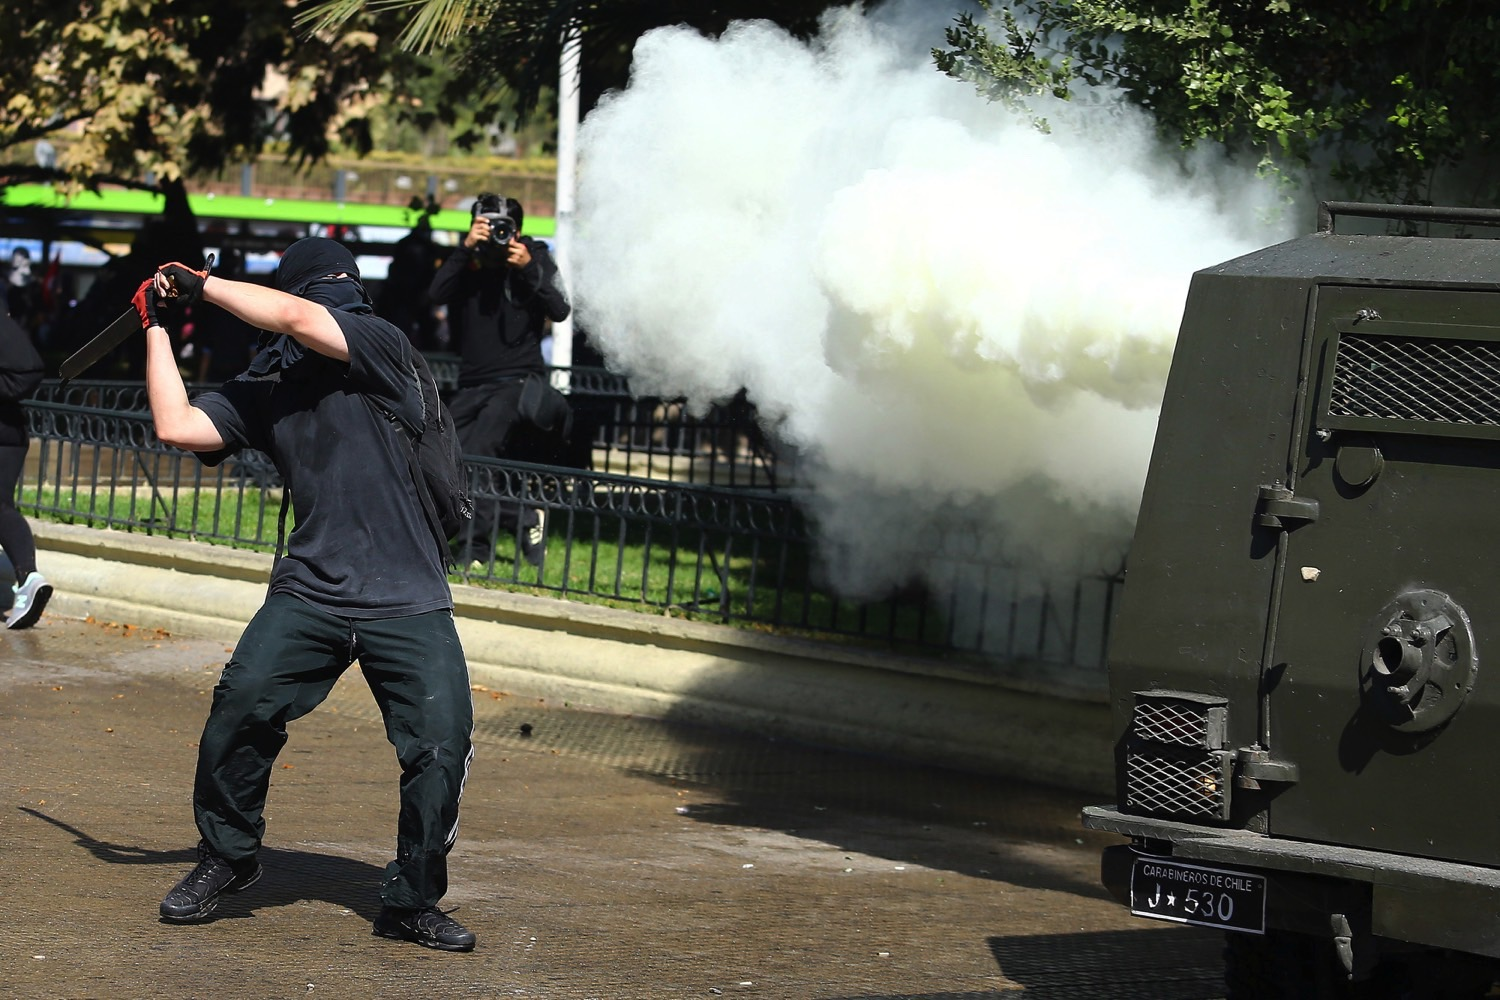 A demonstrator prepares to hit a riot police vehicle during a protest calling for changes in the education system in Santiago, Chile April 11, 2017. Credit: Reuters/Ivan Alvarado